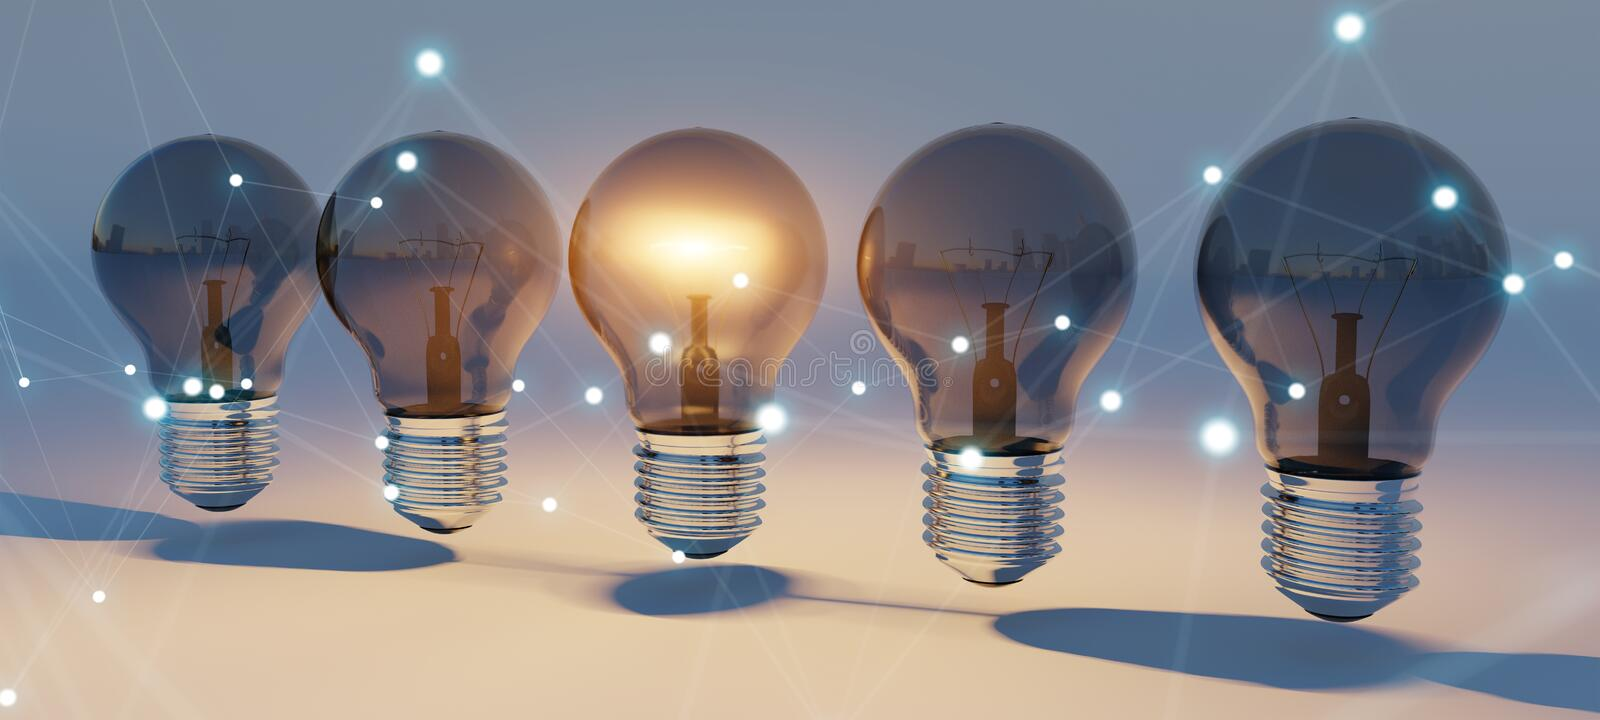 Bright lightbulbs and connections lined up 3D rendering royalty free illustration